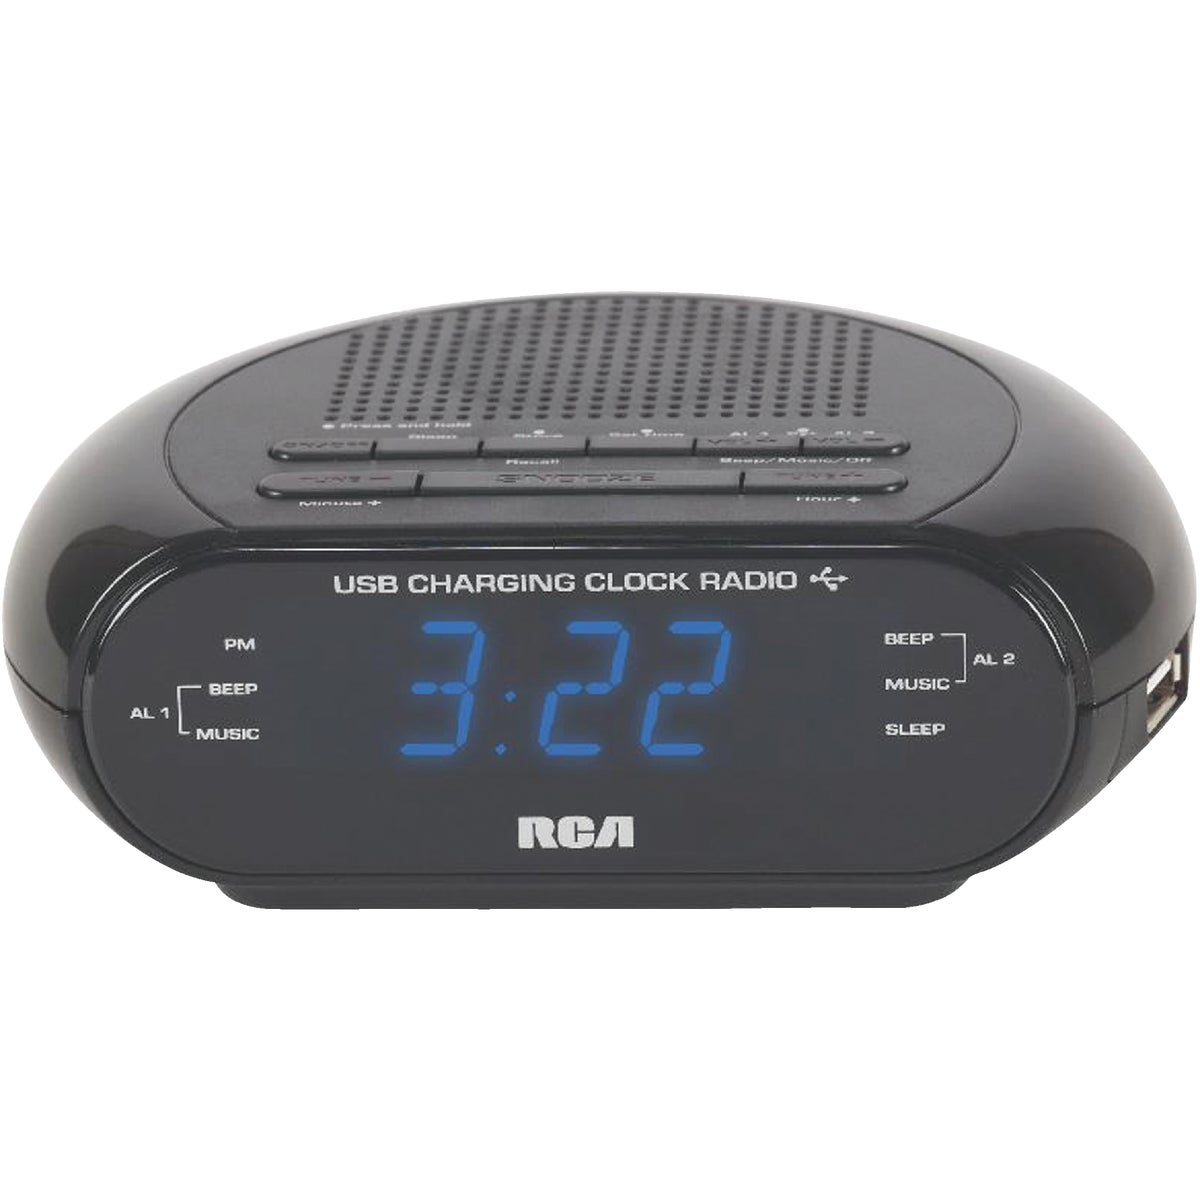 USB ALARM CLOCK RADIO - RC207R by Audiovox Accessories